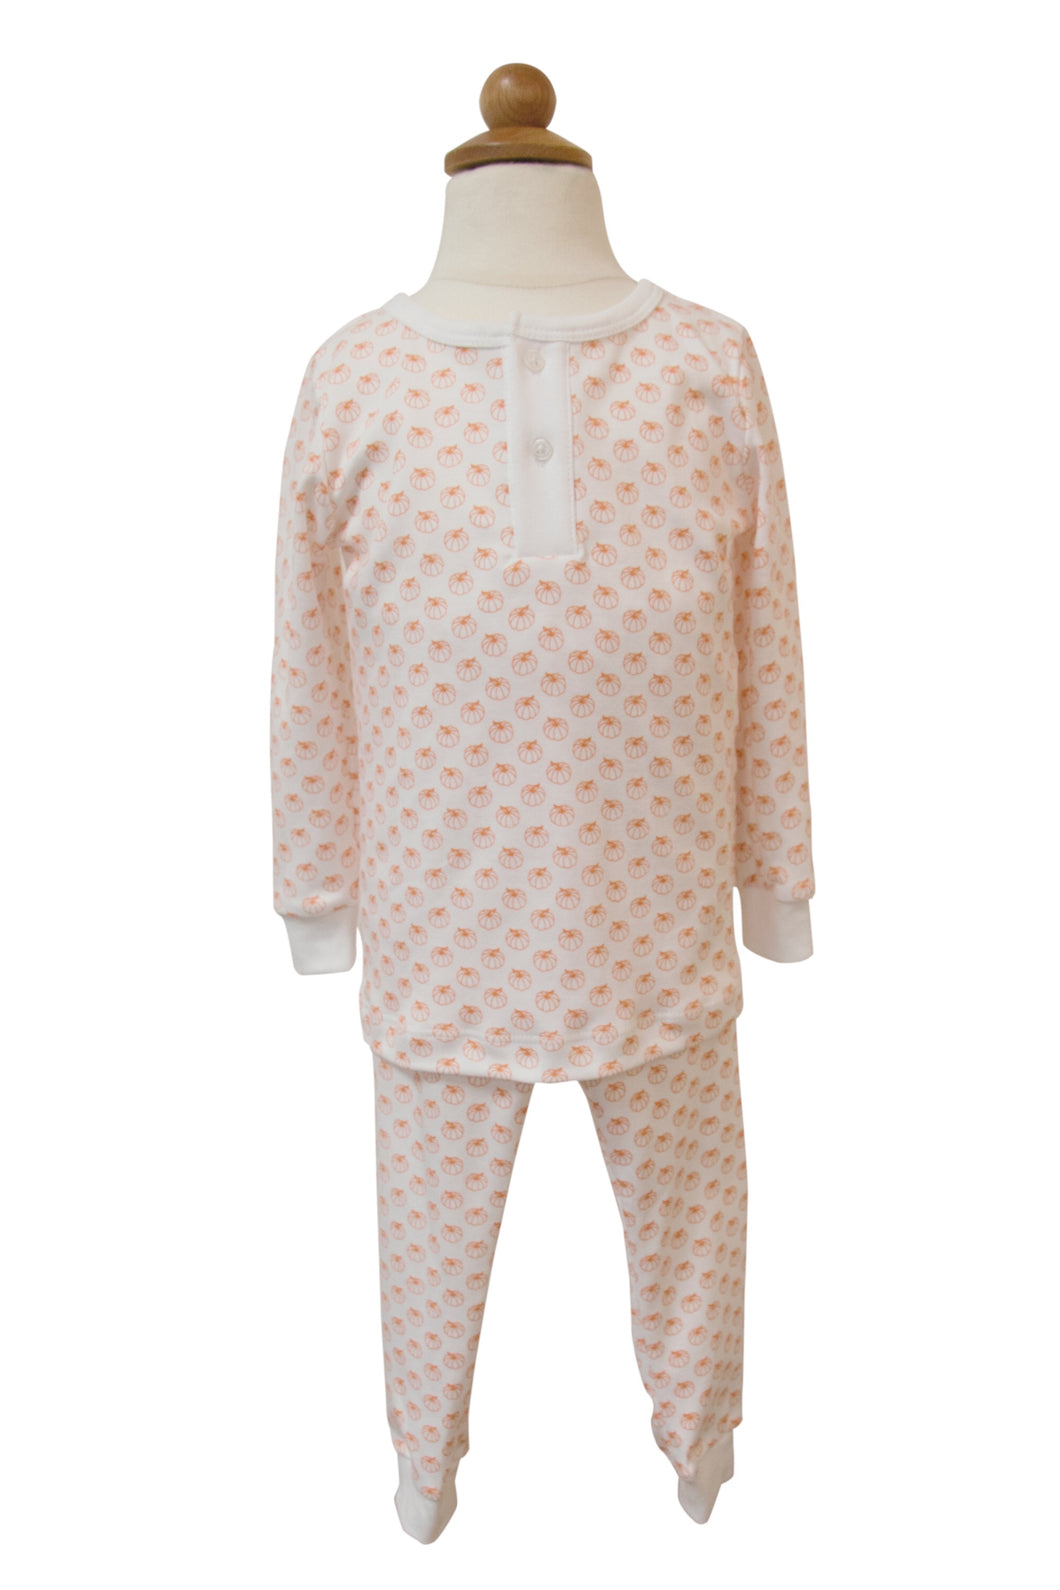 Boy's Pumpkin 2pc Pajama Set